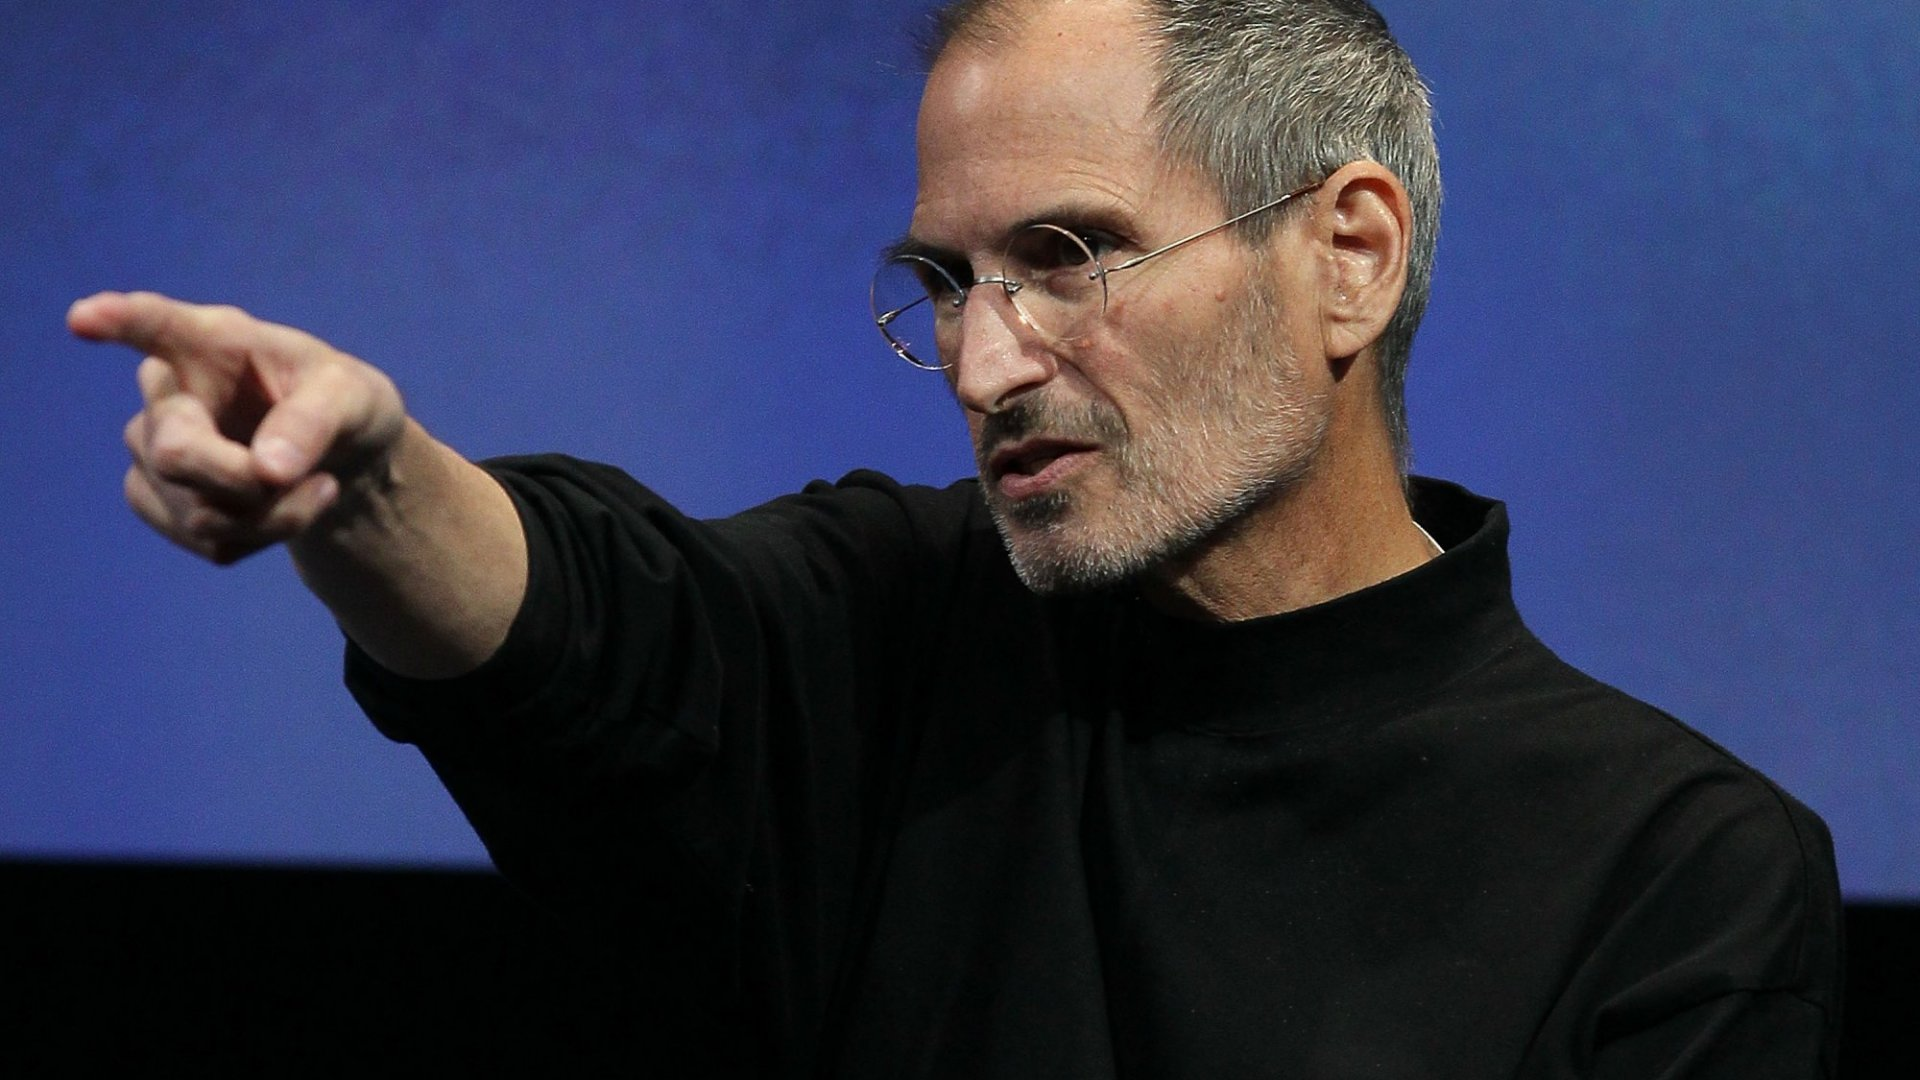 This Is How Steve Jobs Overcame His Weaknesses